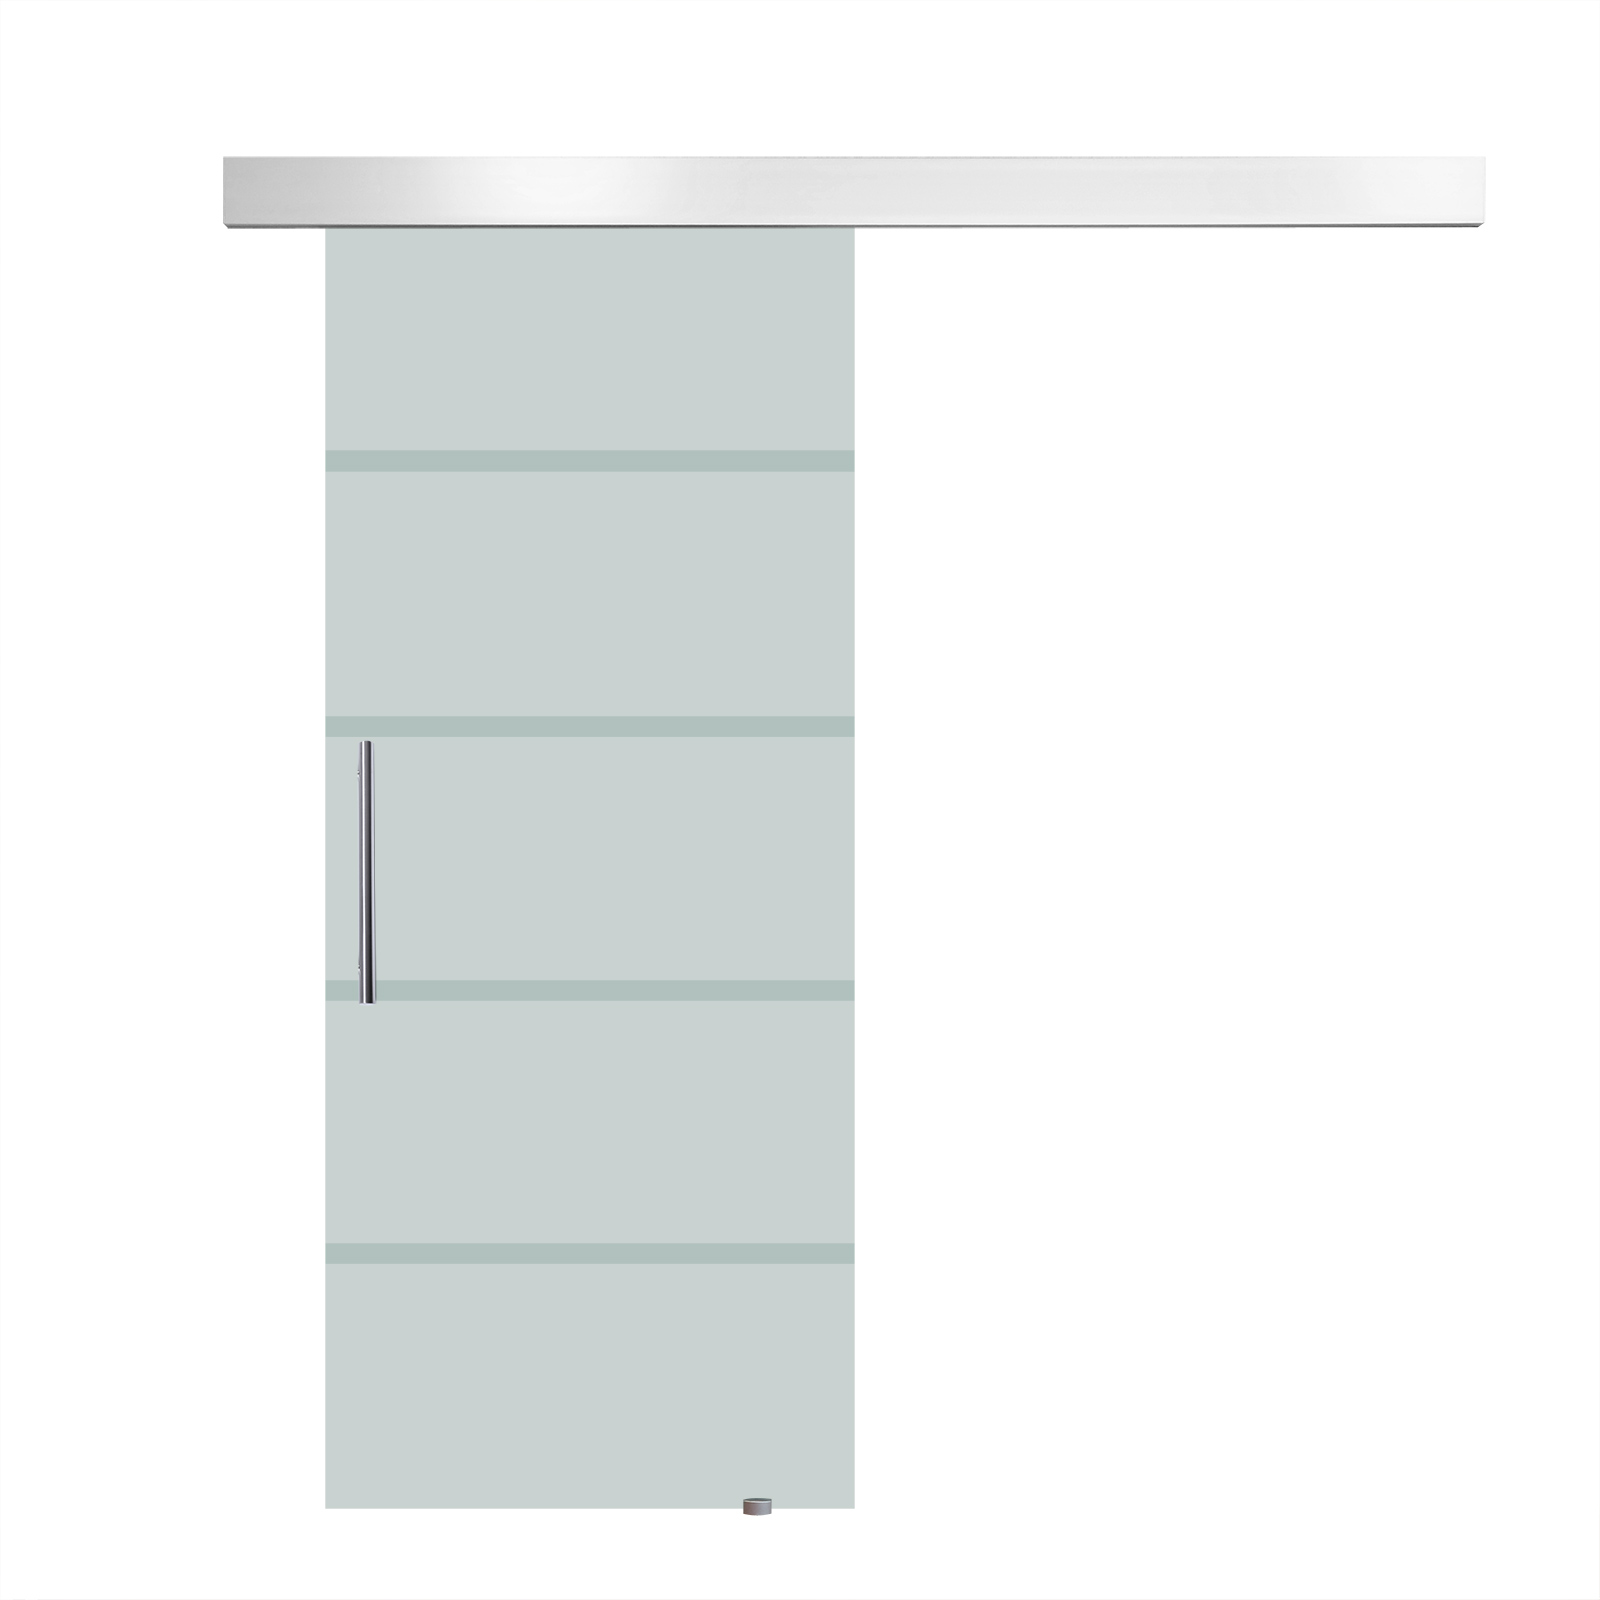 HOMCOM Sliding Door Interior Frosted Glass With Track And Handle For Bathroom Kitchen Study 205x77.5x0.8cm